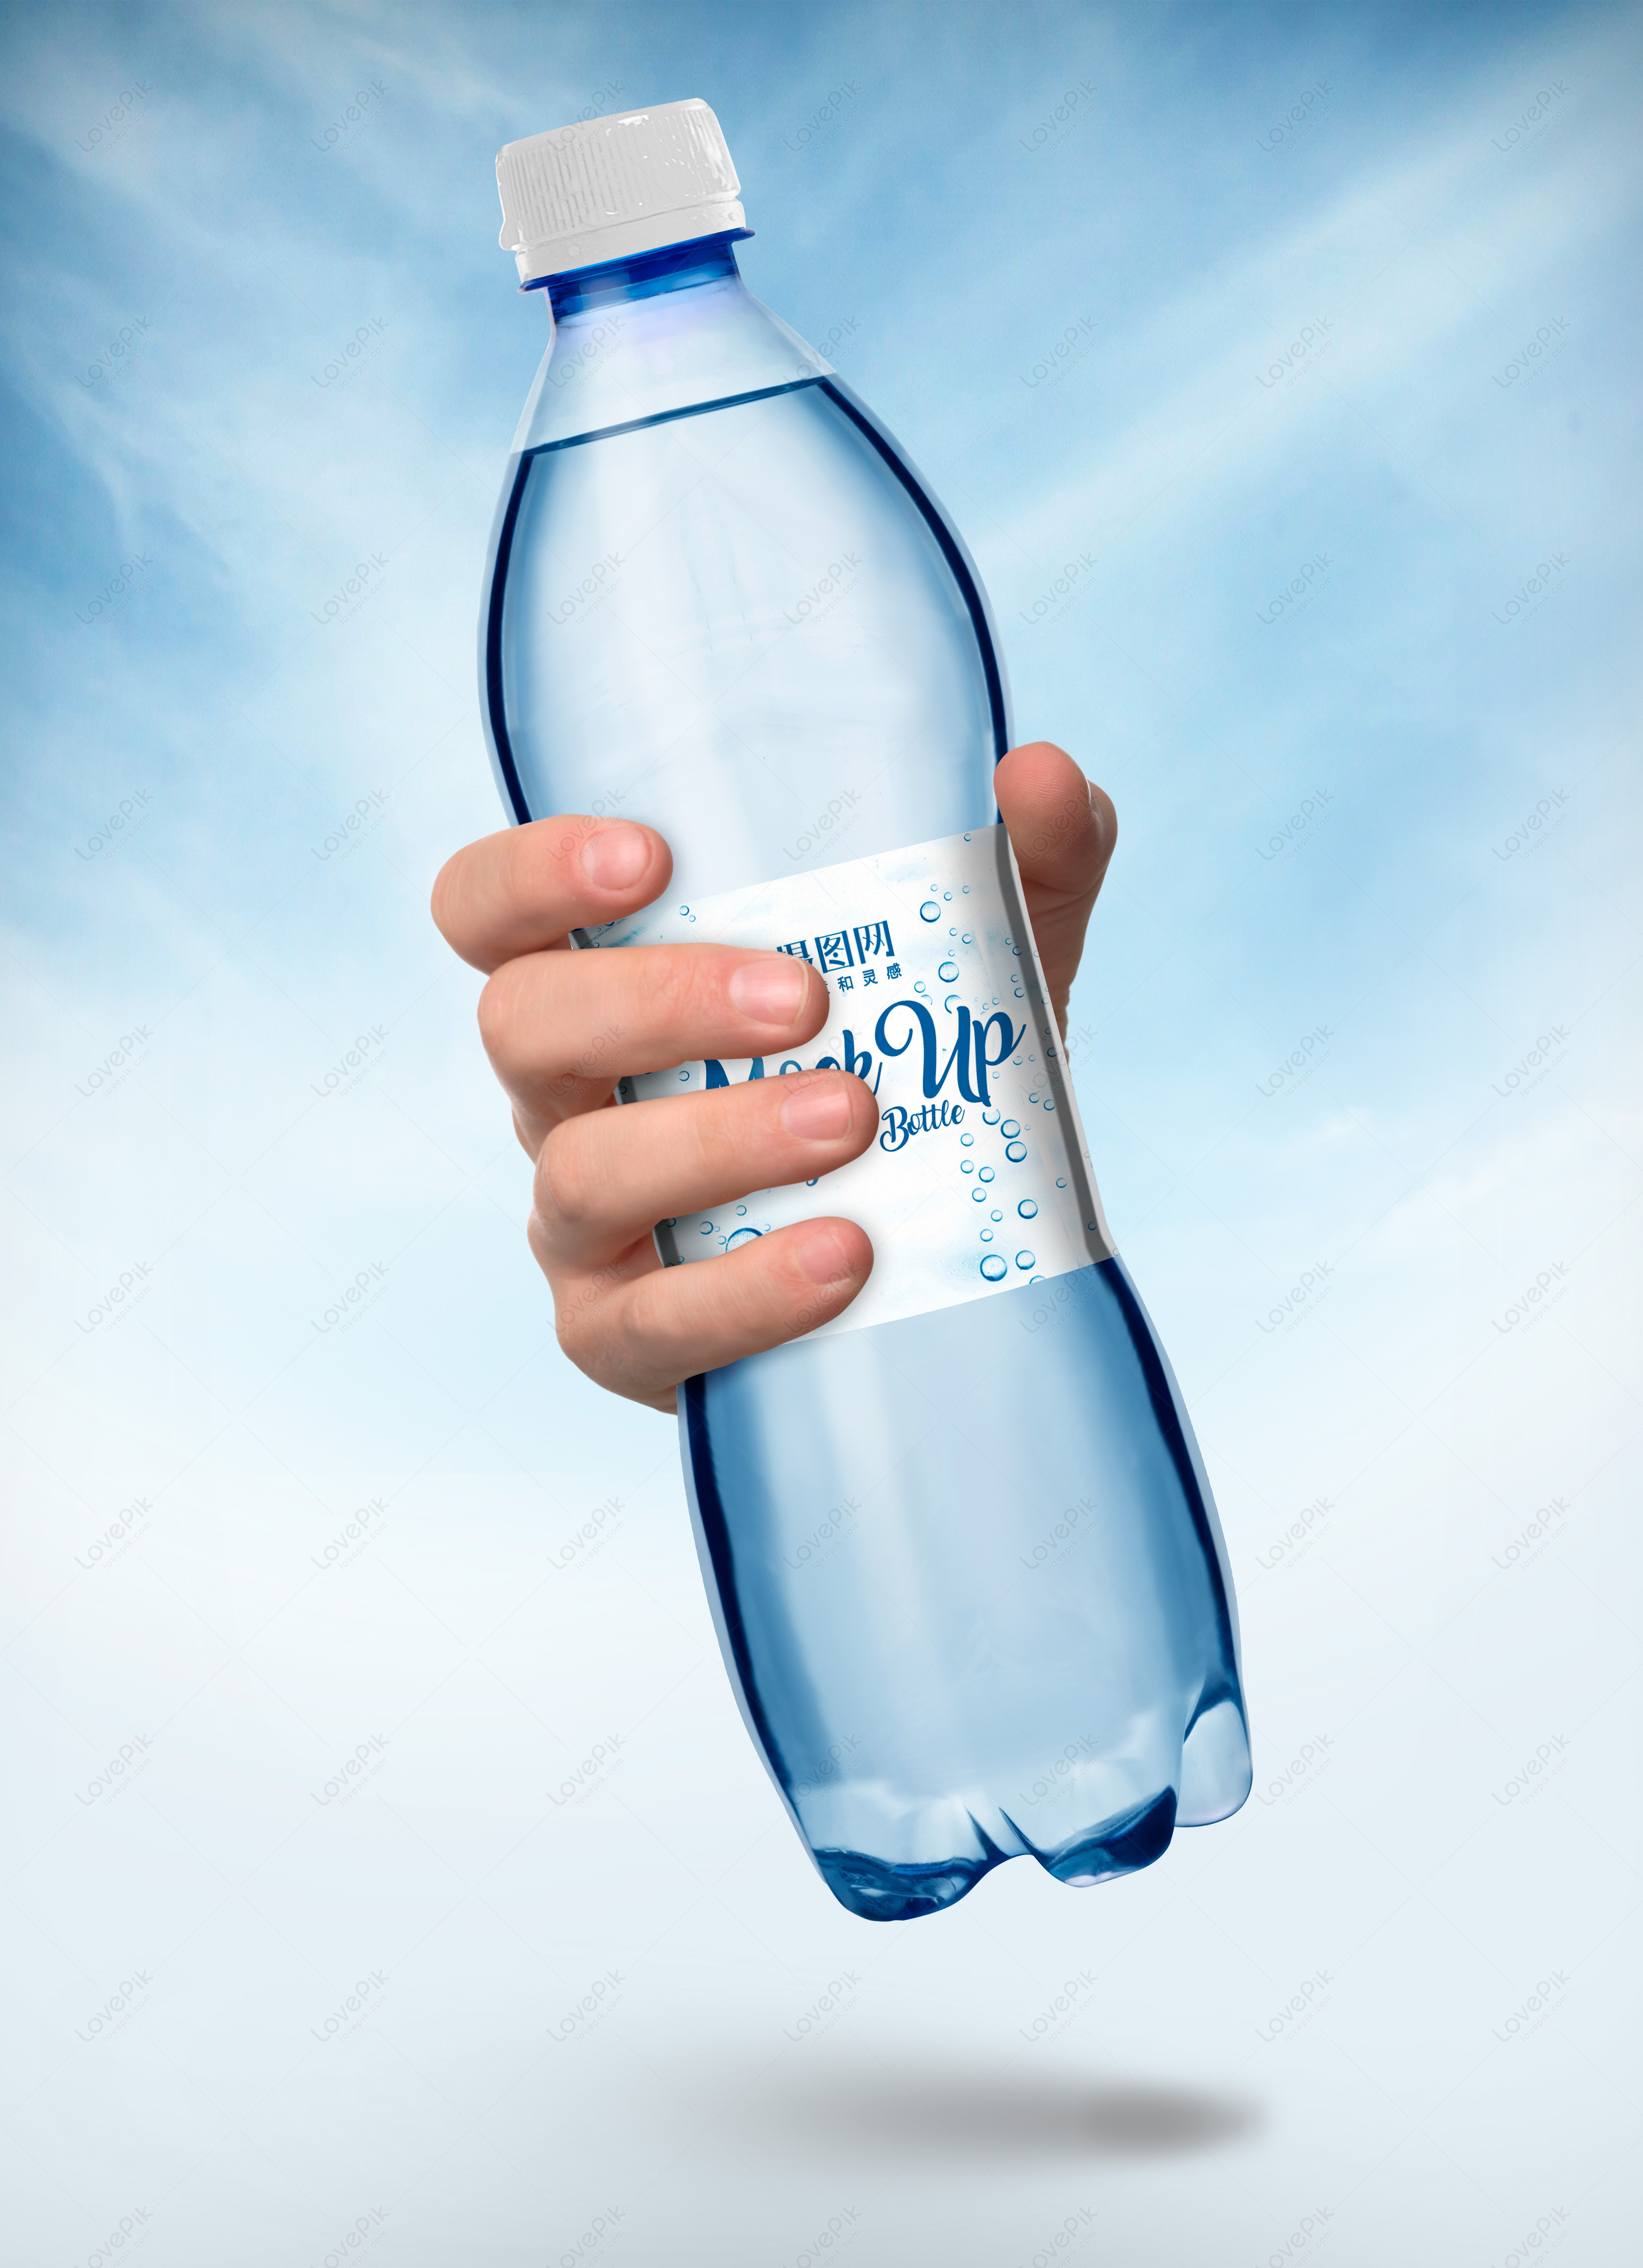 Hand Held Mineral Water Bottle Packaging Mockup Template Imagepicture Free Download 400836863